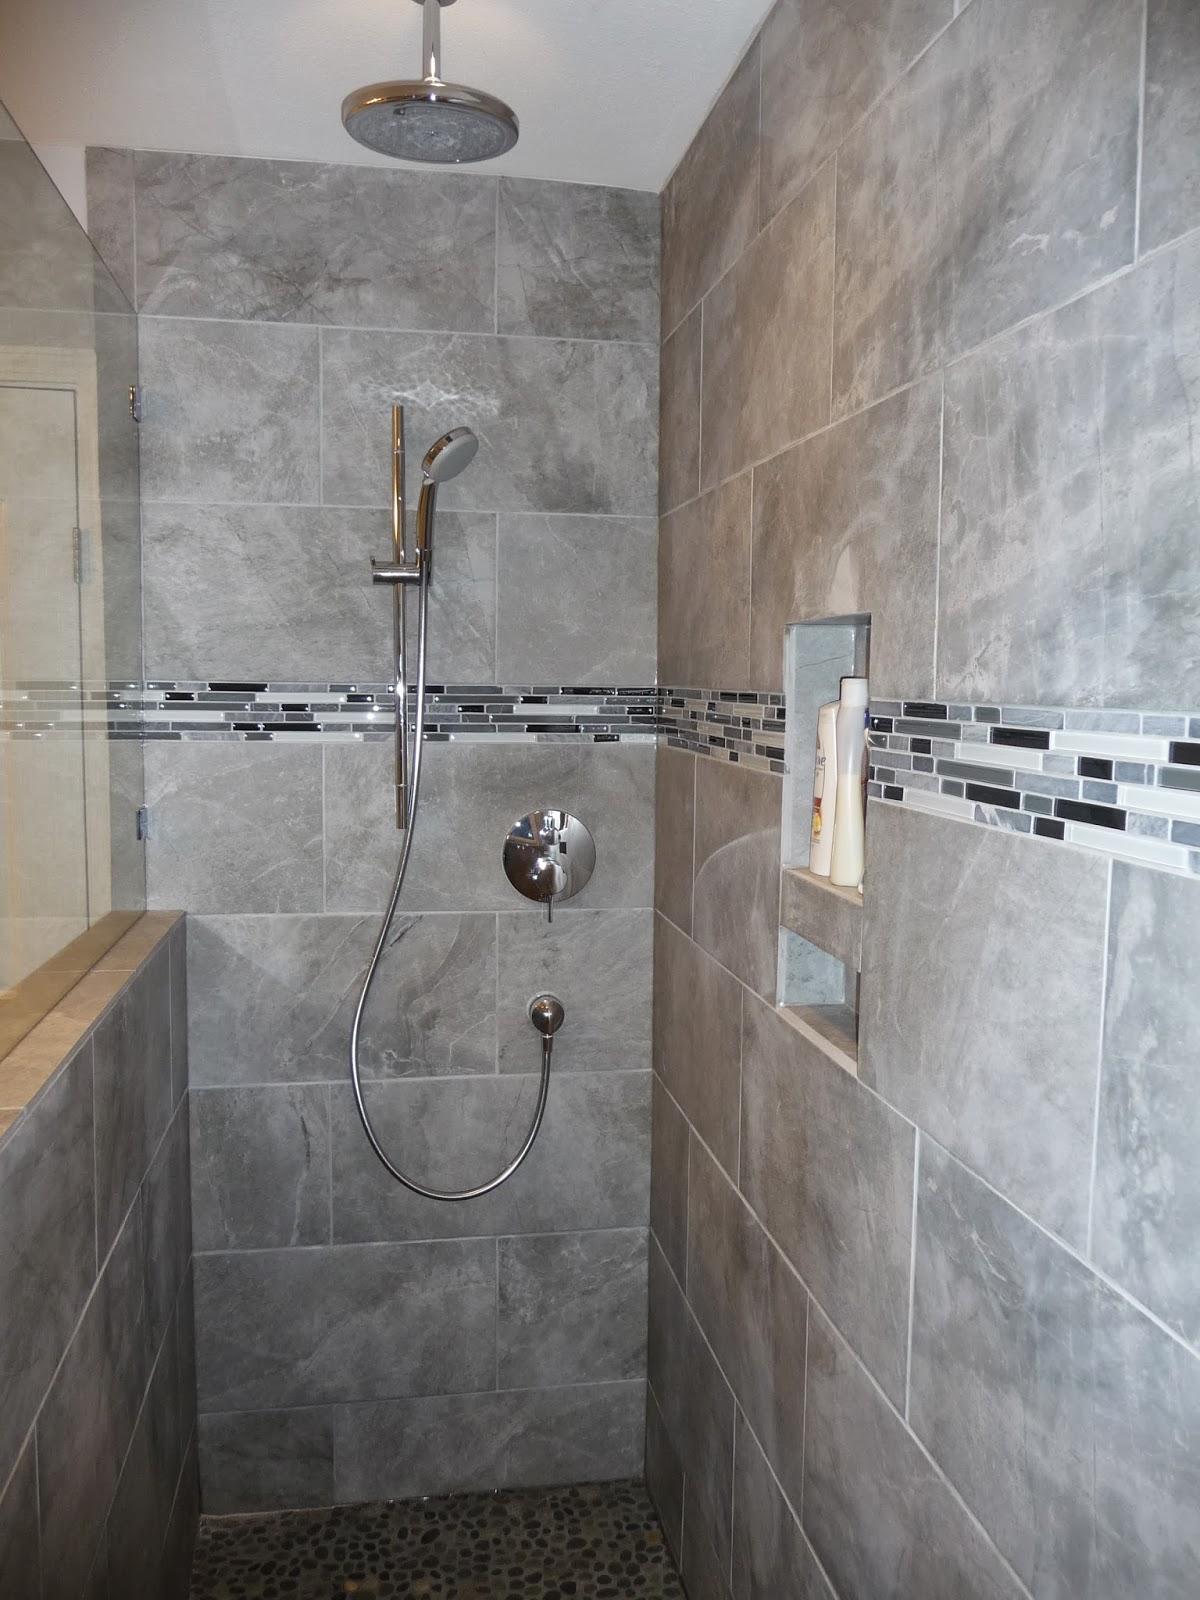 ceiling rain shower head with handheld. After THE HANDY  DON Handyman Services Master Ensuite Renovation